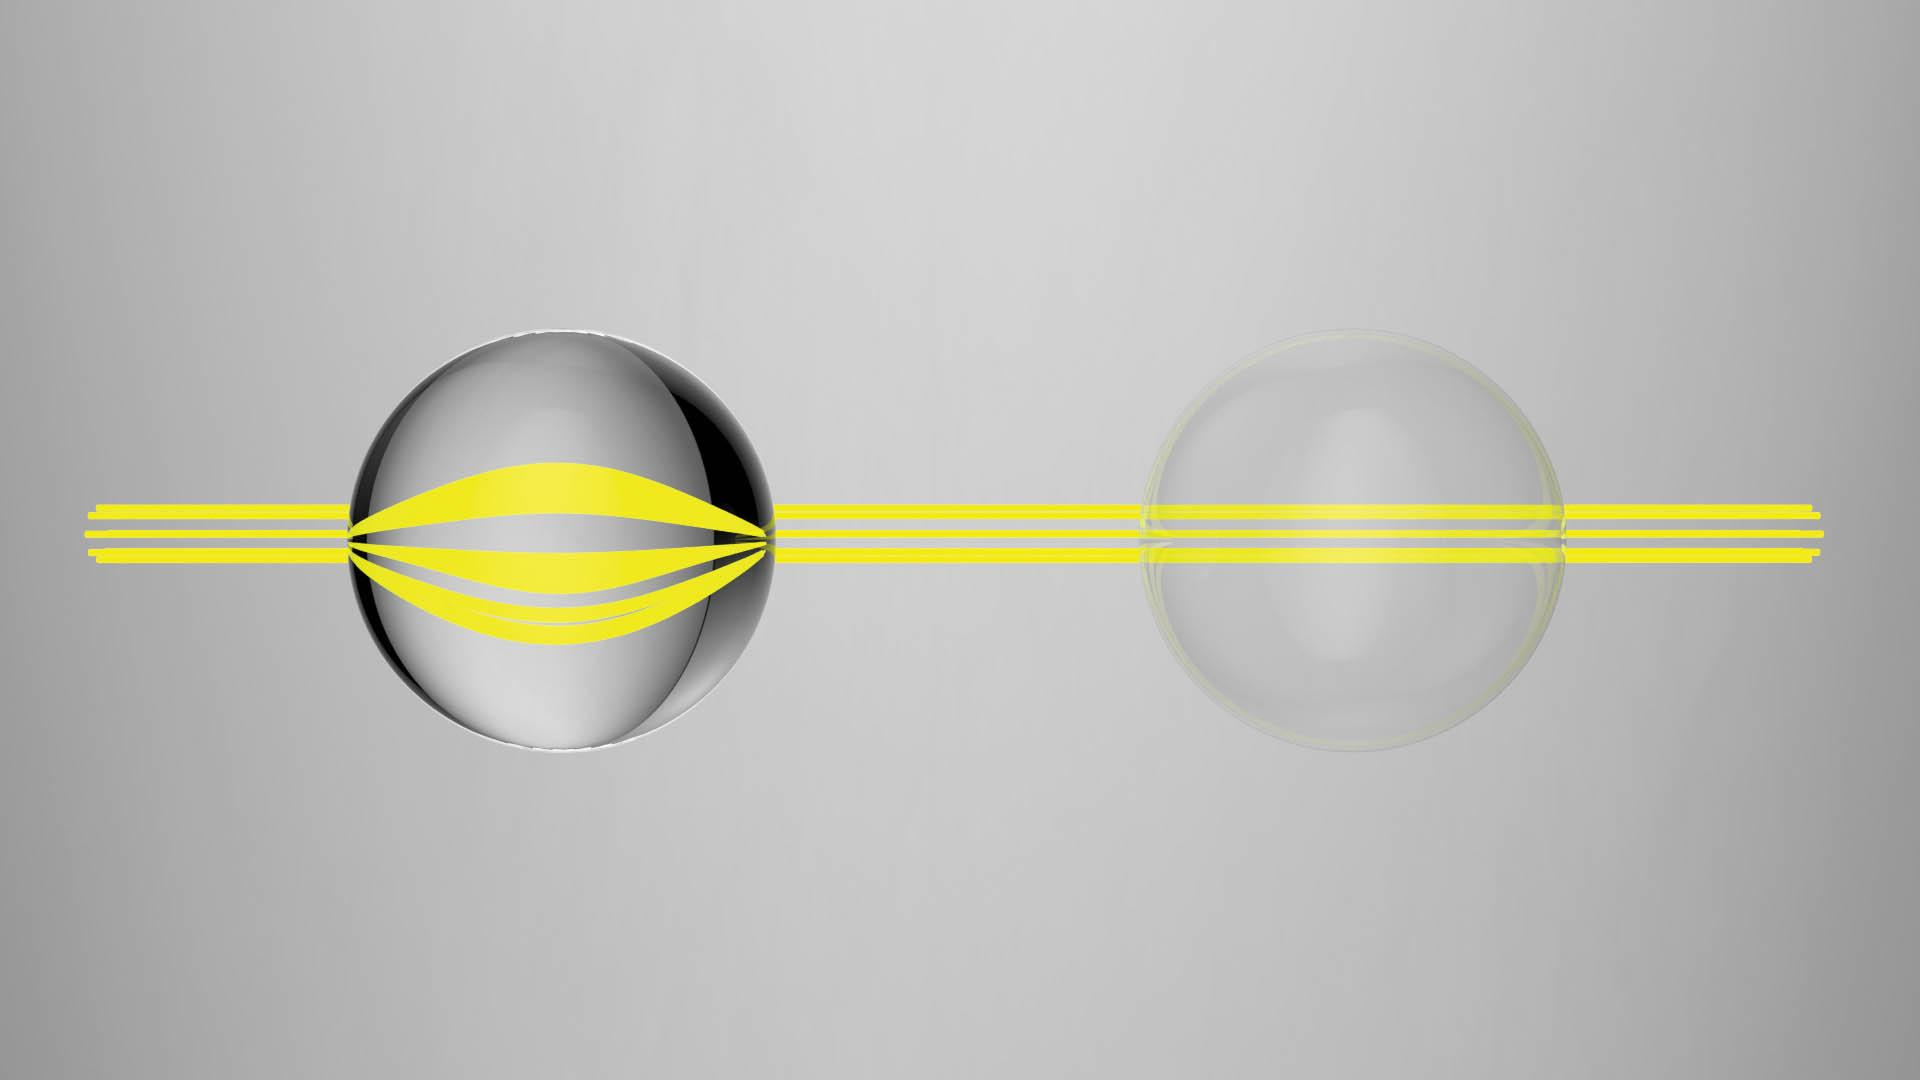 two objects with light going through them